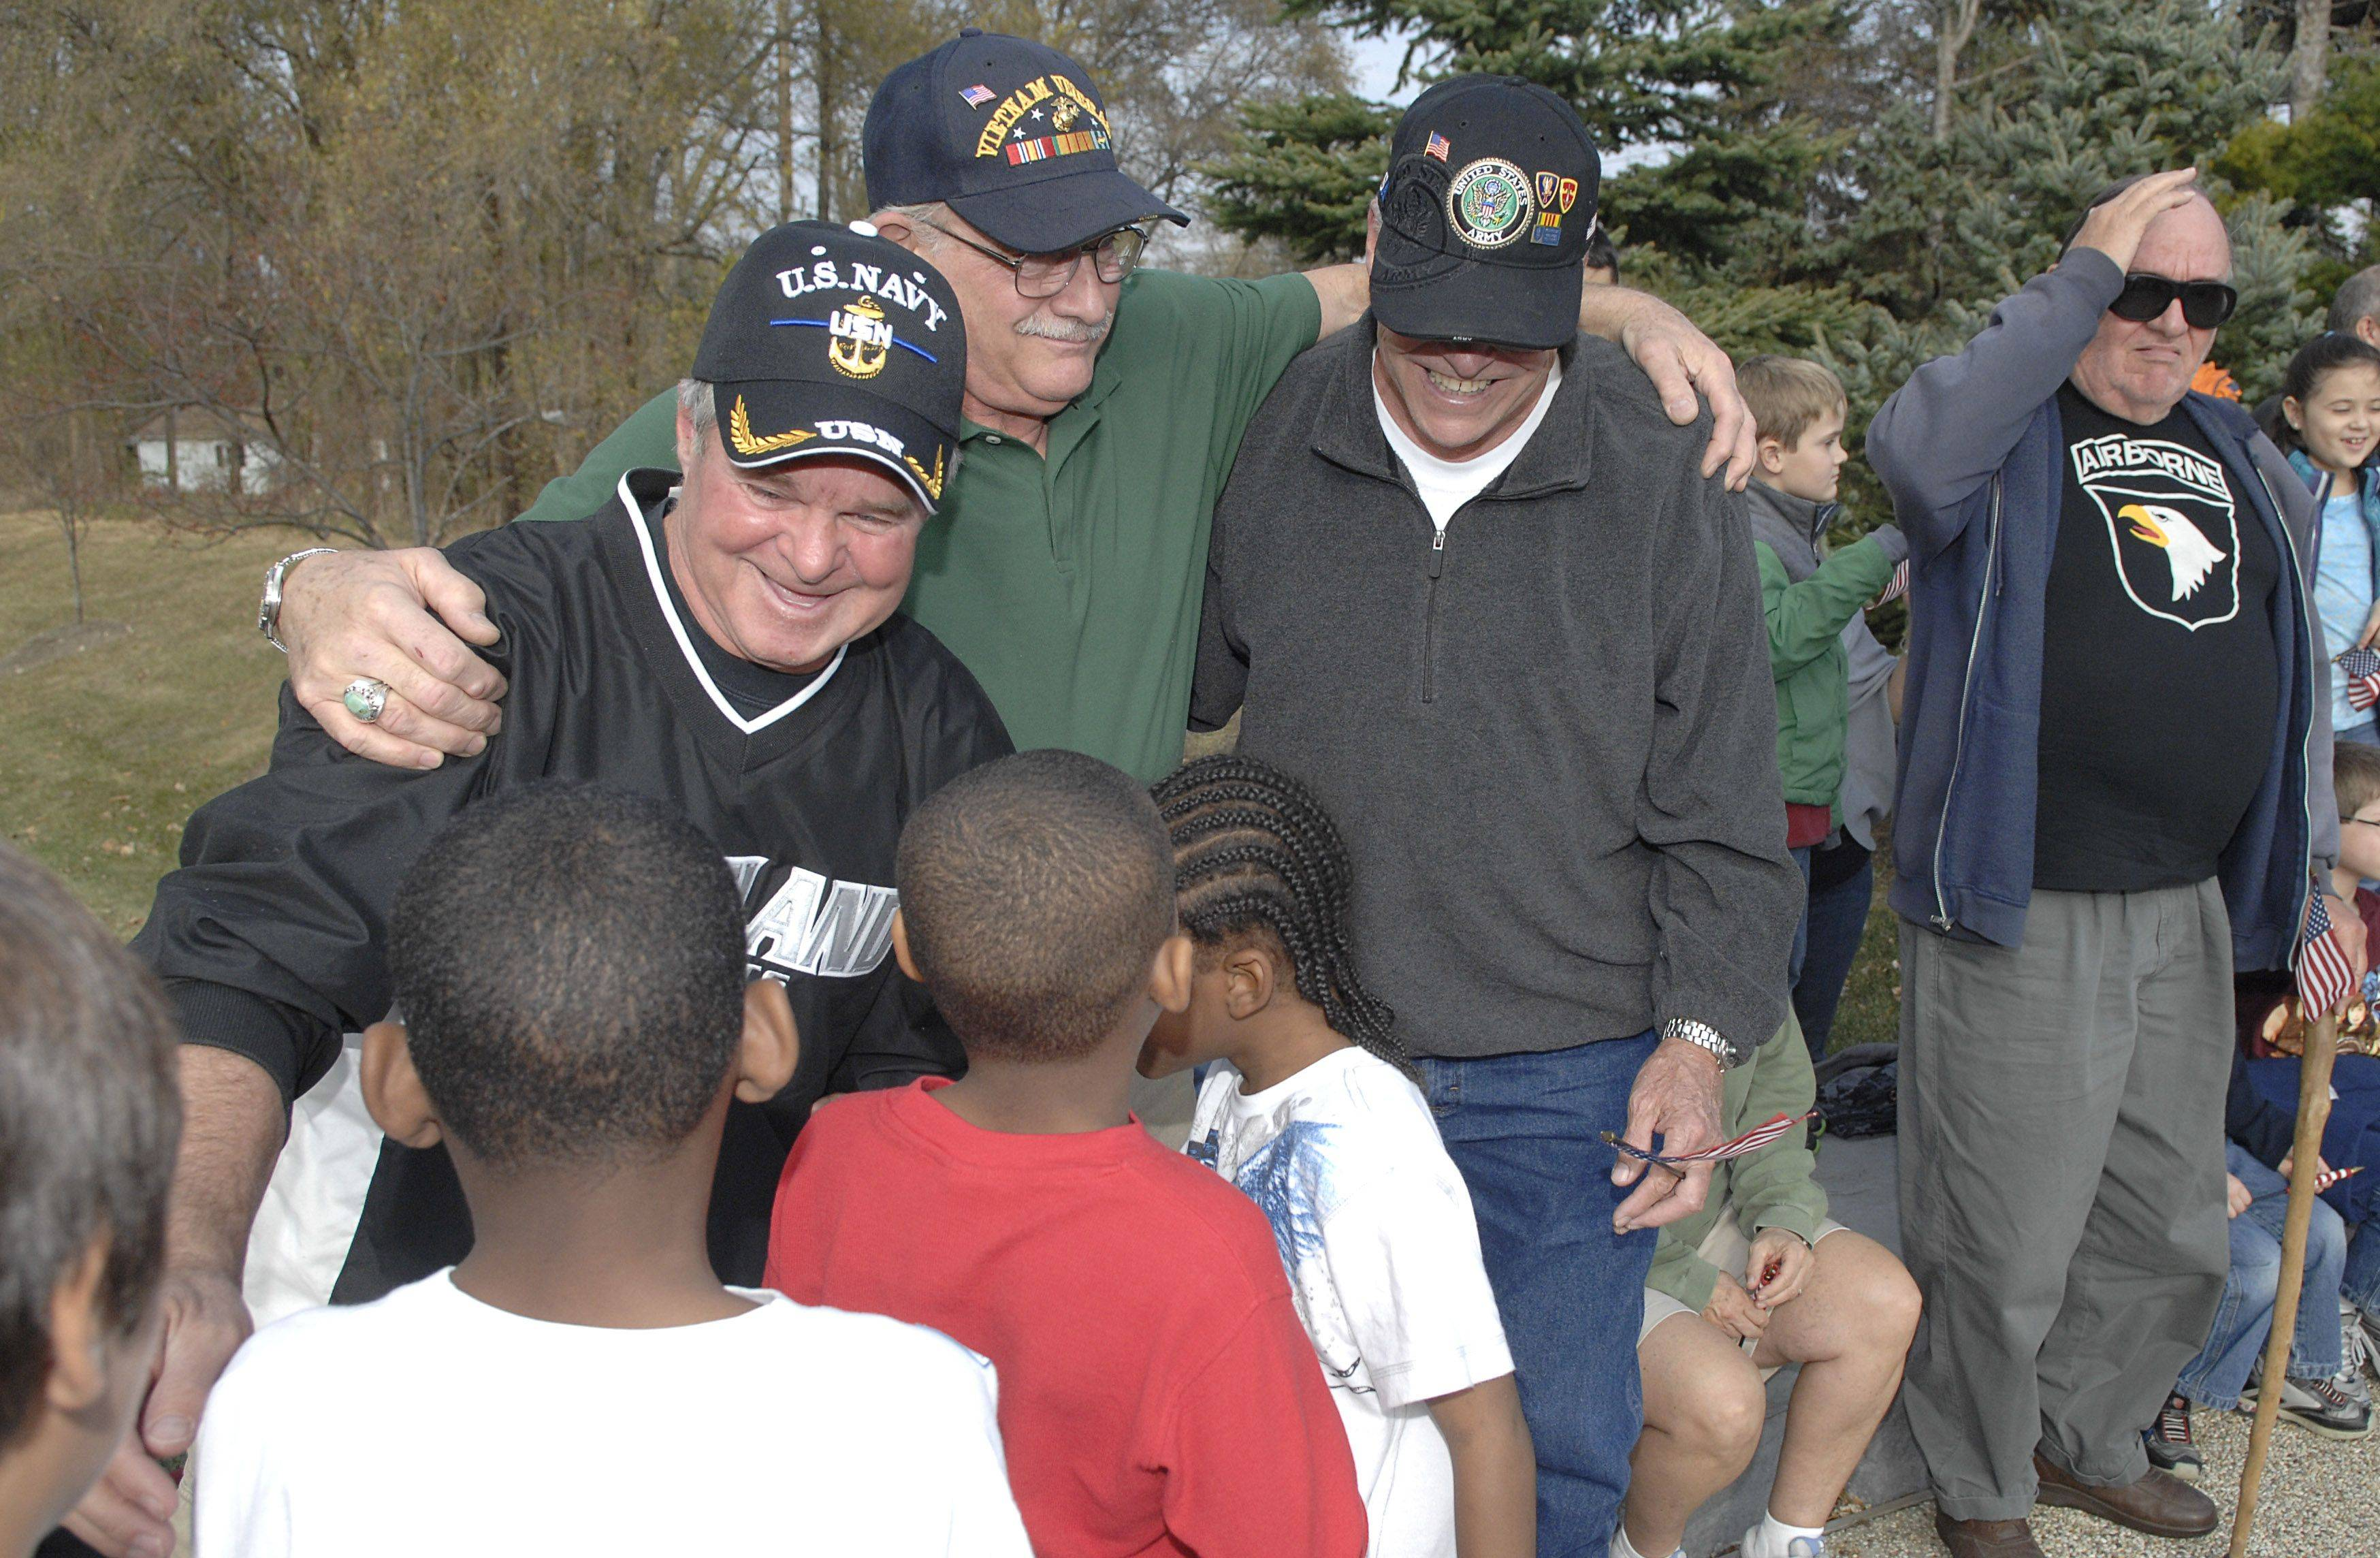 From left, Jim Myers, Jesse Frank, and Phil Jungles, all veterans from North Aurora, receive hugs from Share and Care Learning Center students at the Veterans Day ceremony in North Aurora on Thursday, November 11. Myers, a Navy vet, said it brought tears to his eyes. Frank served in the Marines and Jungles served in the Army.